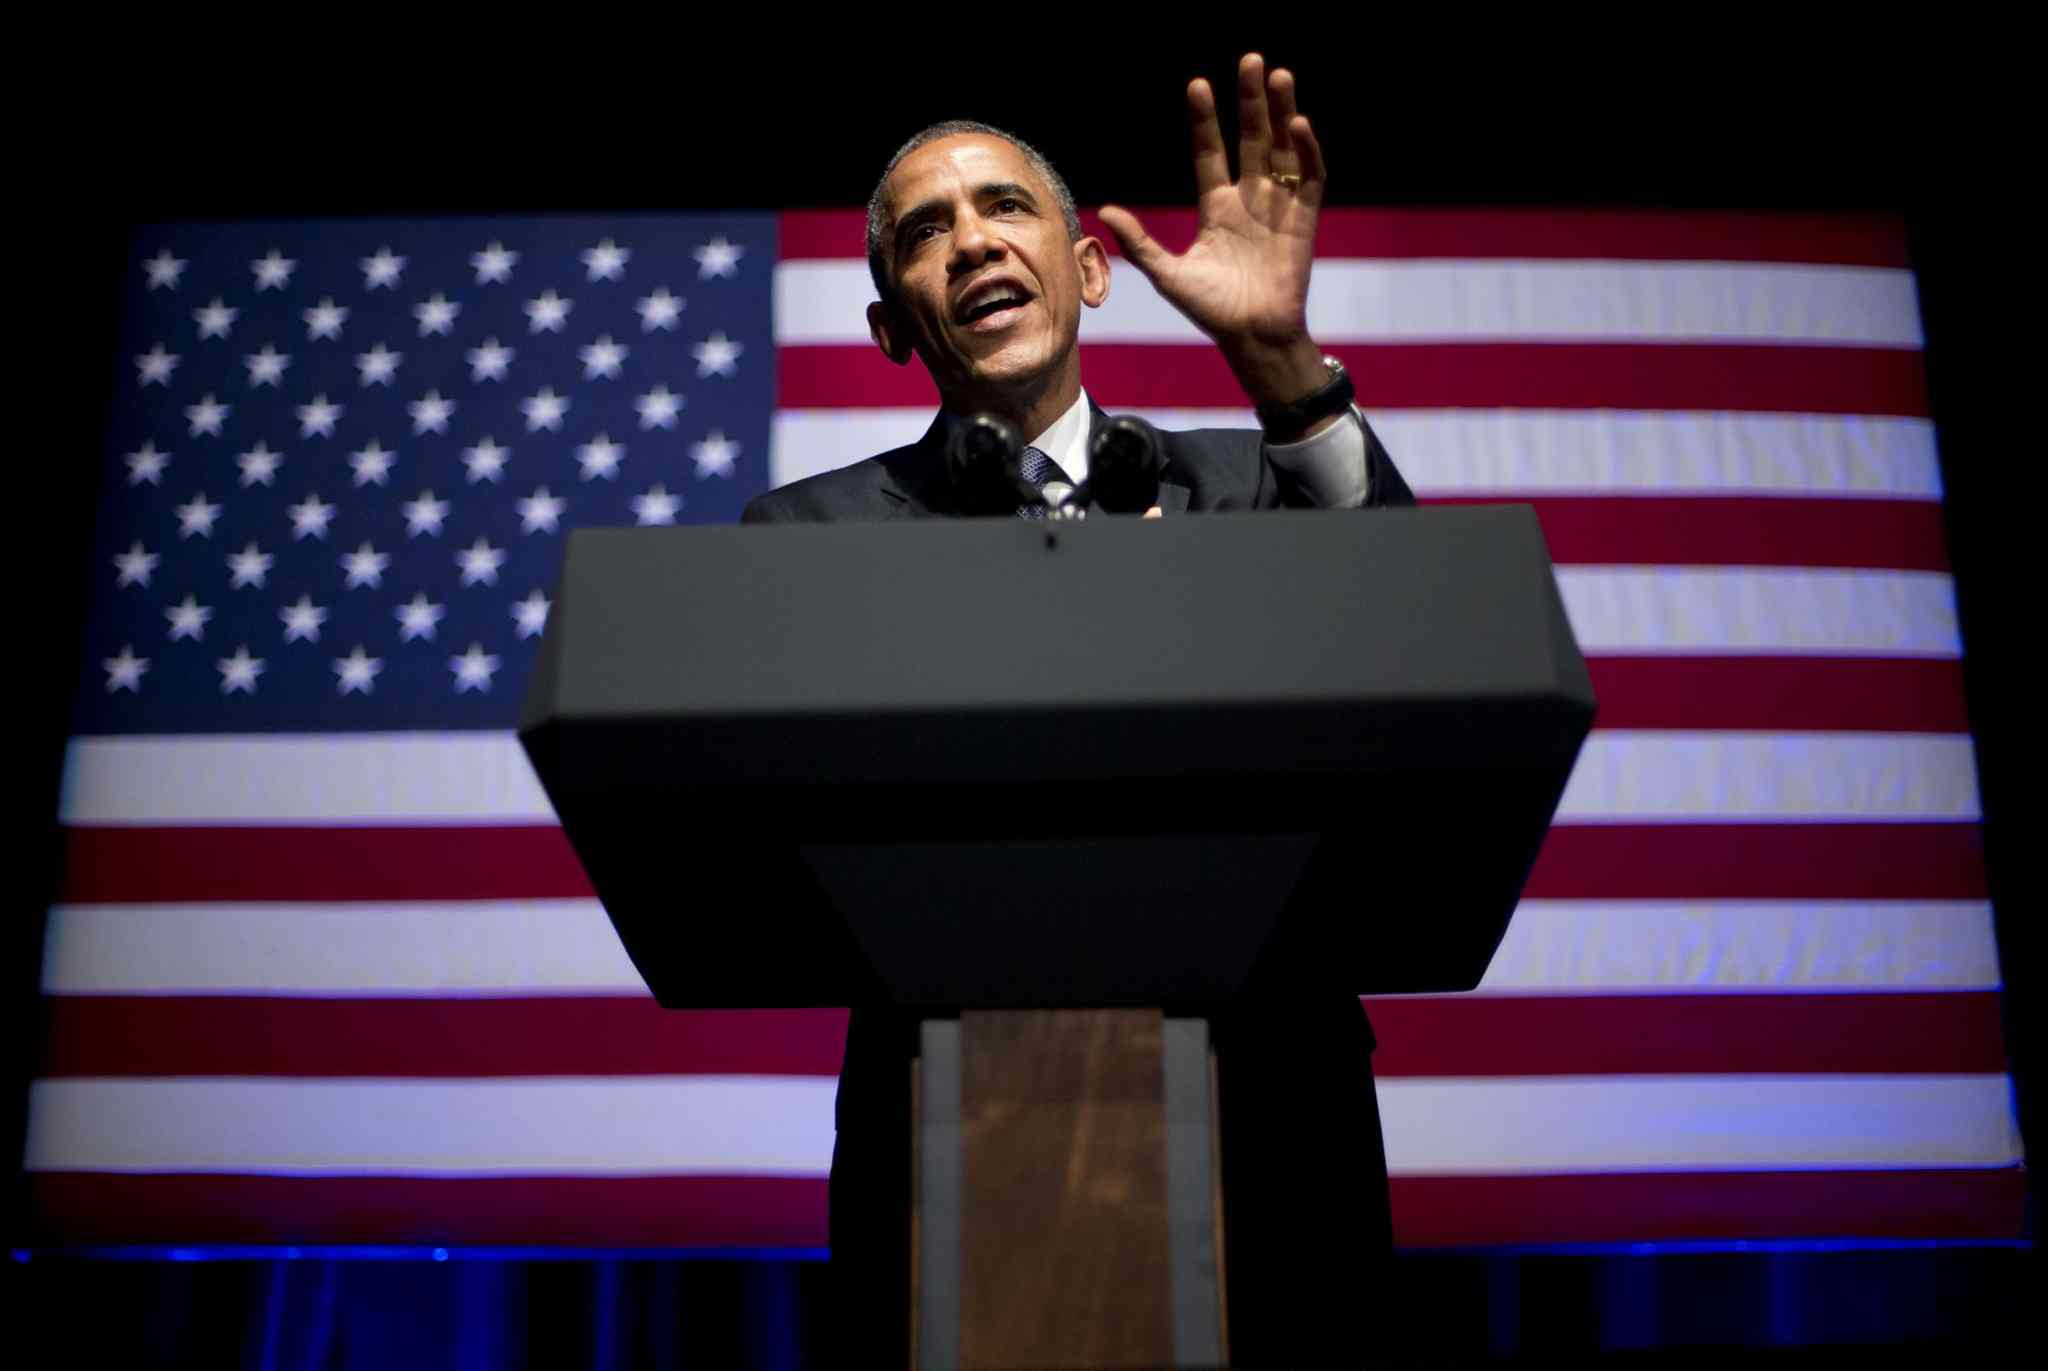 U.S. President Barack Obama may have to engage Iran diplomatically to address the situations in Iraq and Syria.